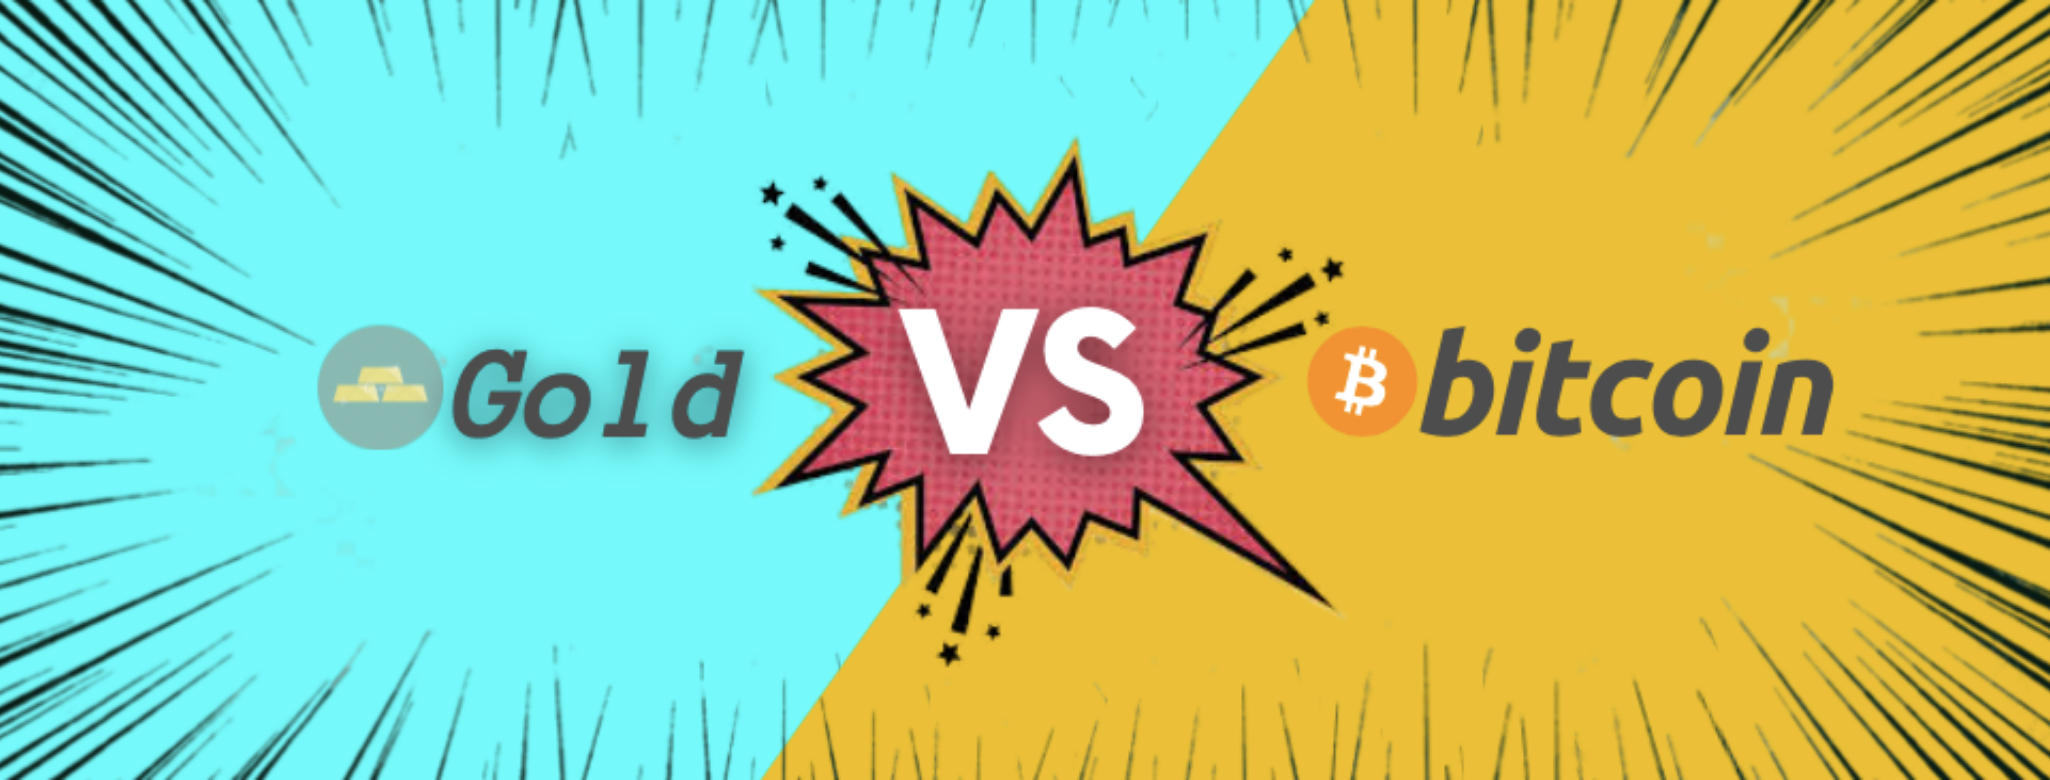 Gold vs. Bitcoin - Which is Better?